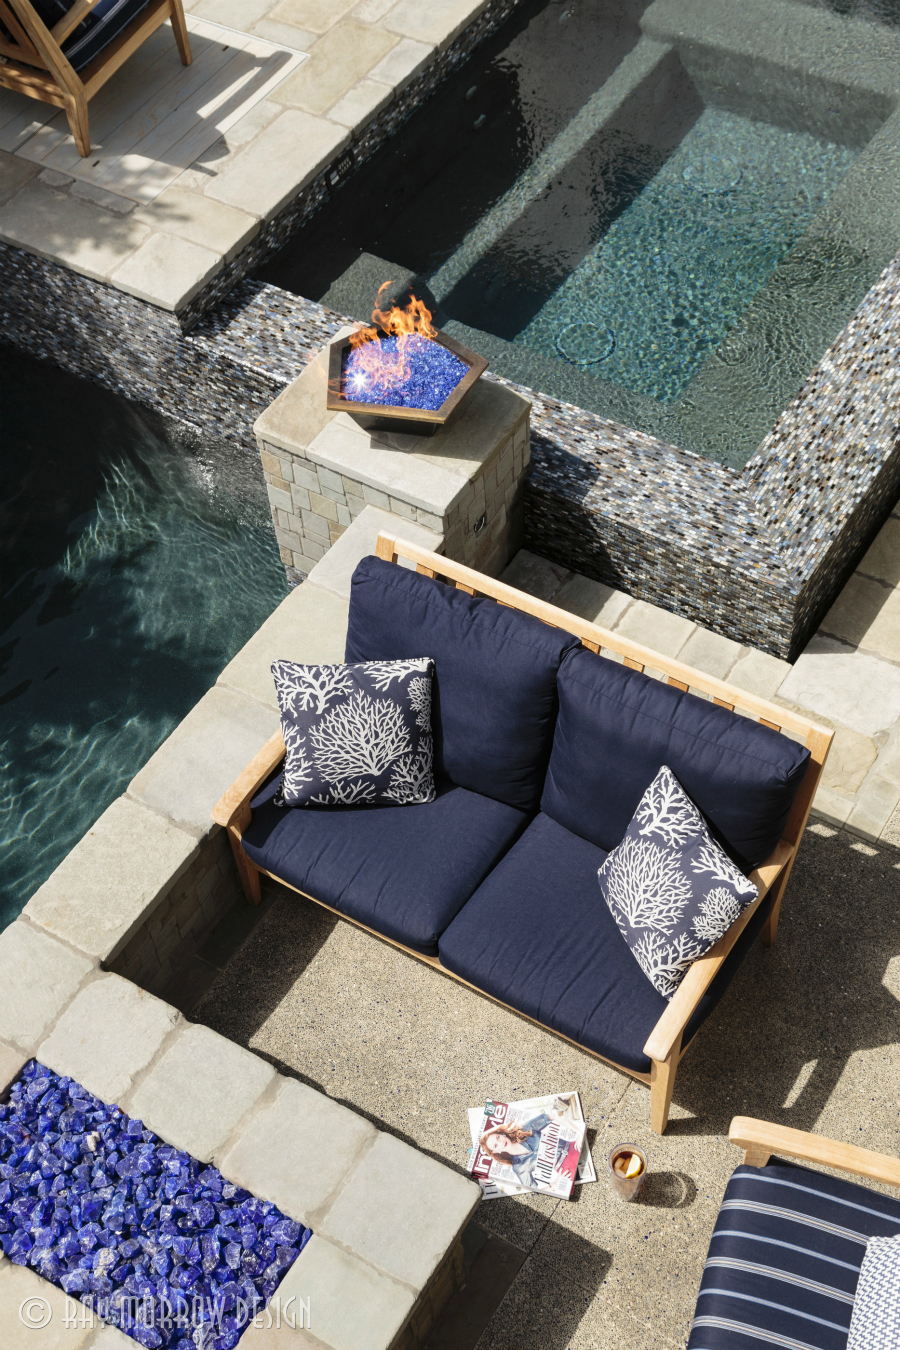 spa-with-fire-bowl-and-patio-cottle.jpg